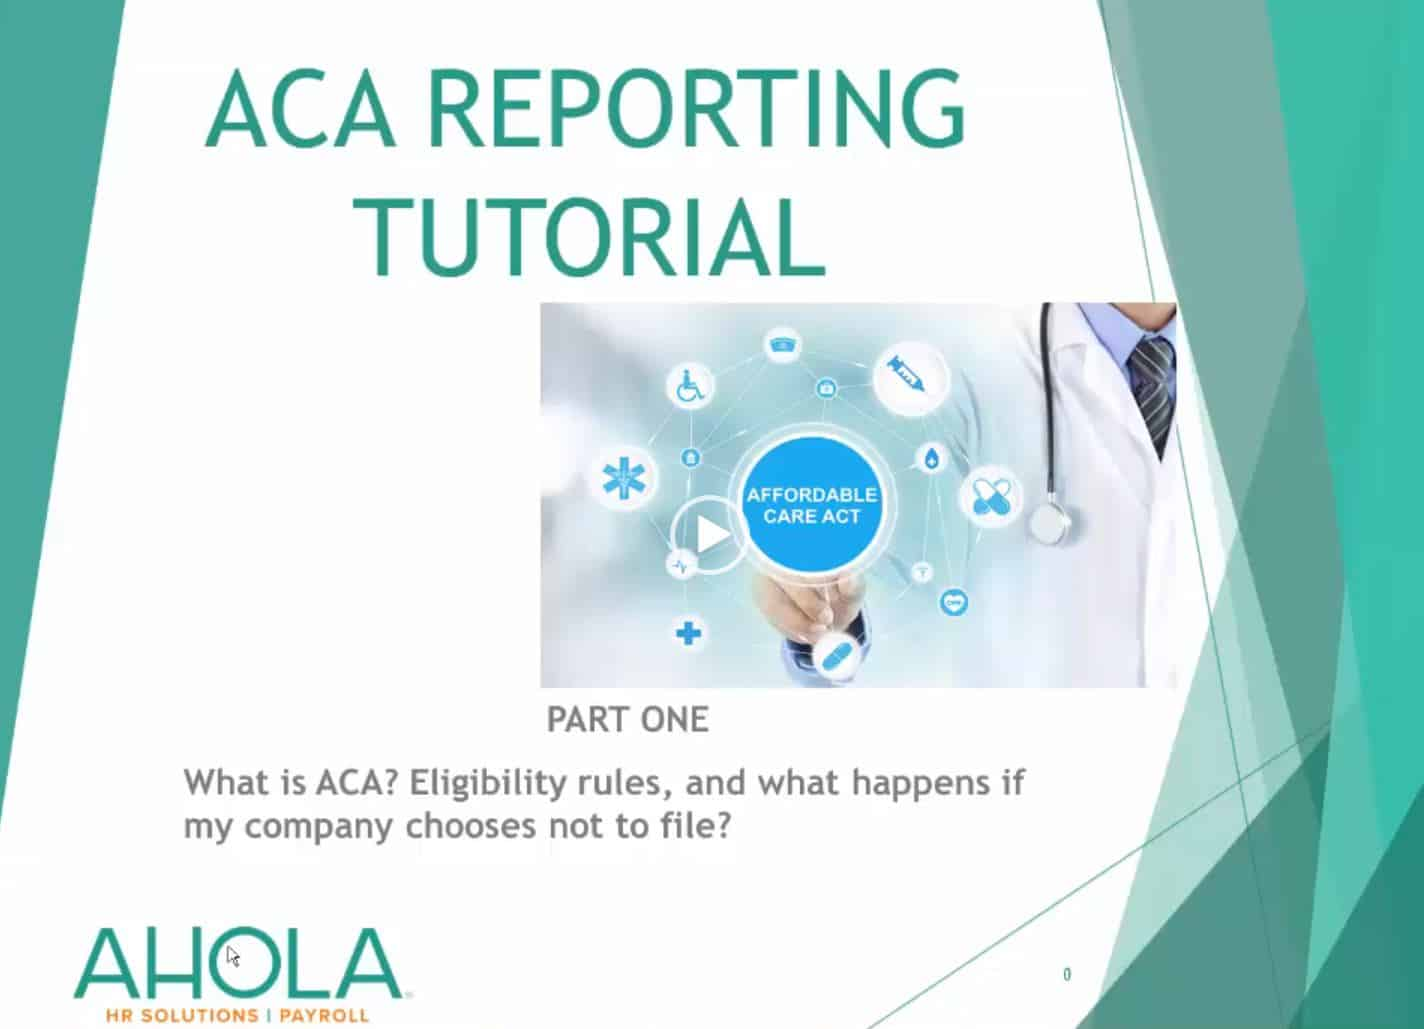 ACA REPORTING TUTORIAL PART 1